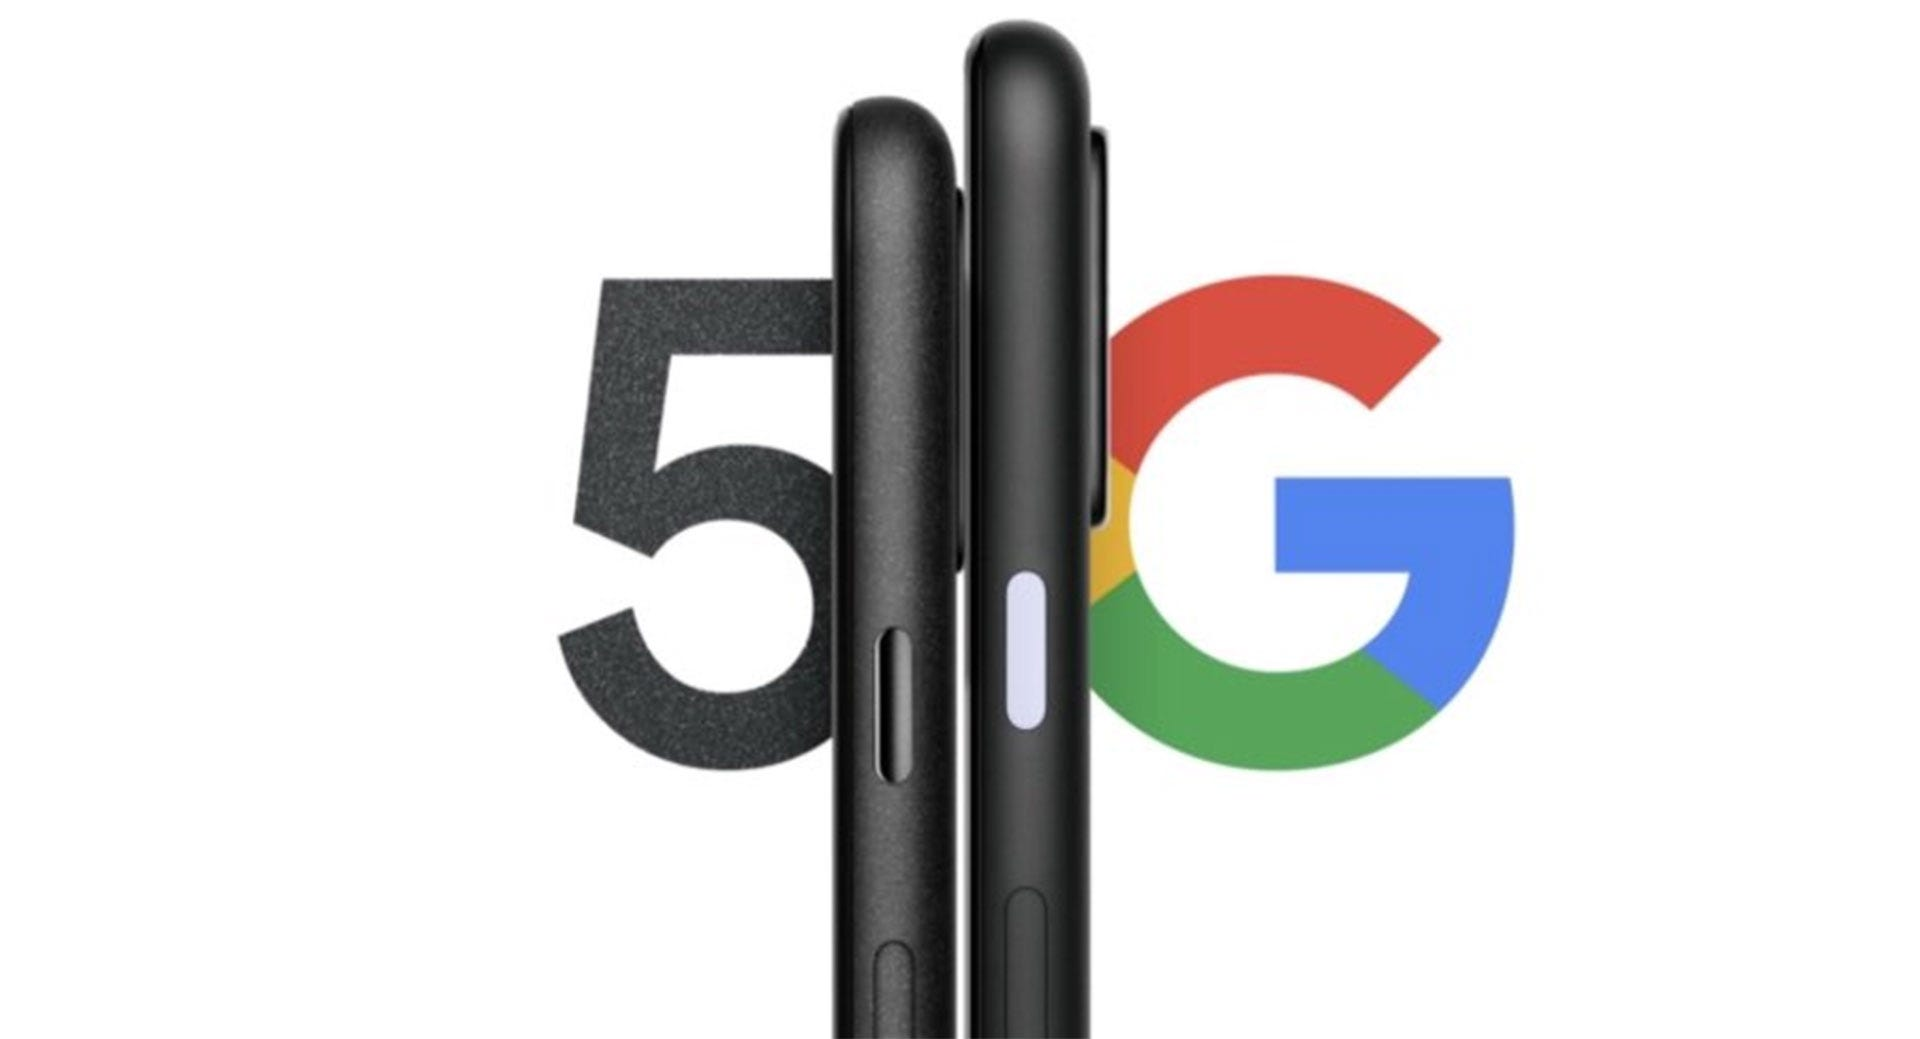 Pixel 4a 5G and Pixel 5 teaser image